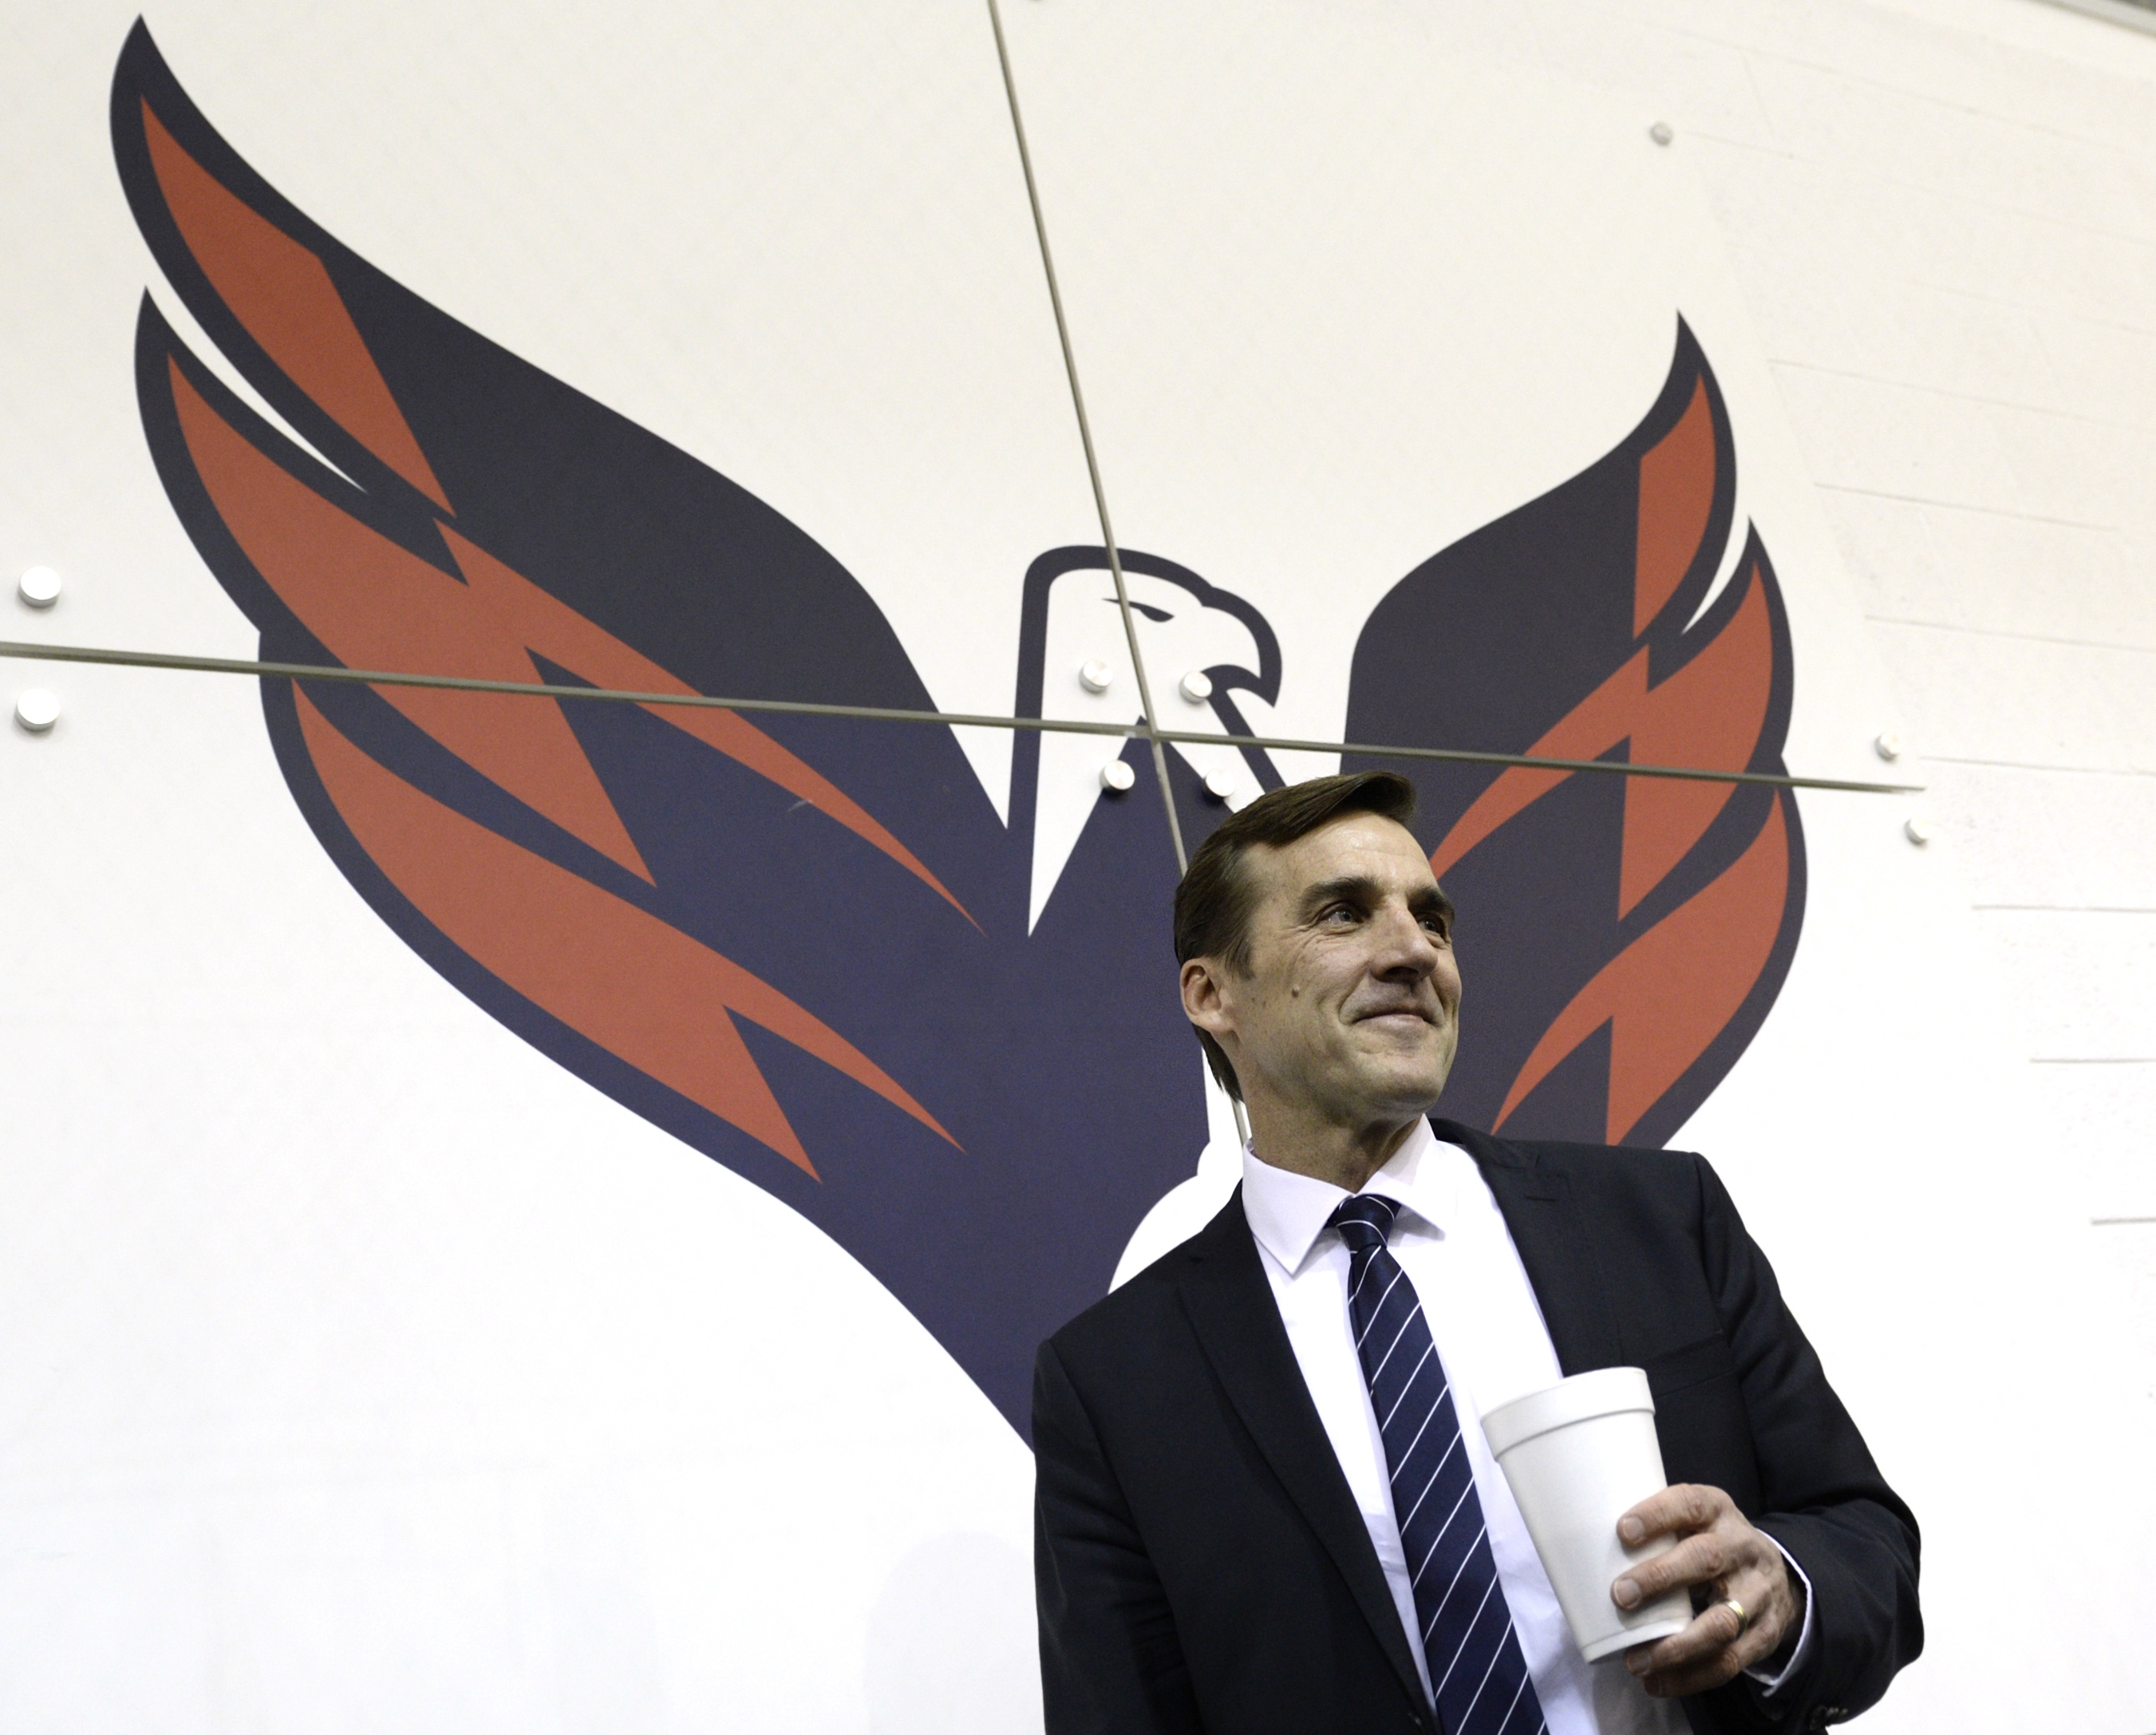 Washington Capitals former general manager George McPhee walks away from the podium after a news conference in Arlington, Va., Monday, April 28, 2014. McPhee and coach Adam Oates lost their jobs with the Washington Capitals after the team failed to make t